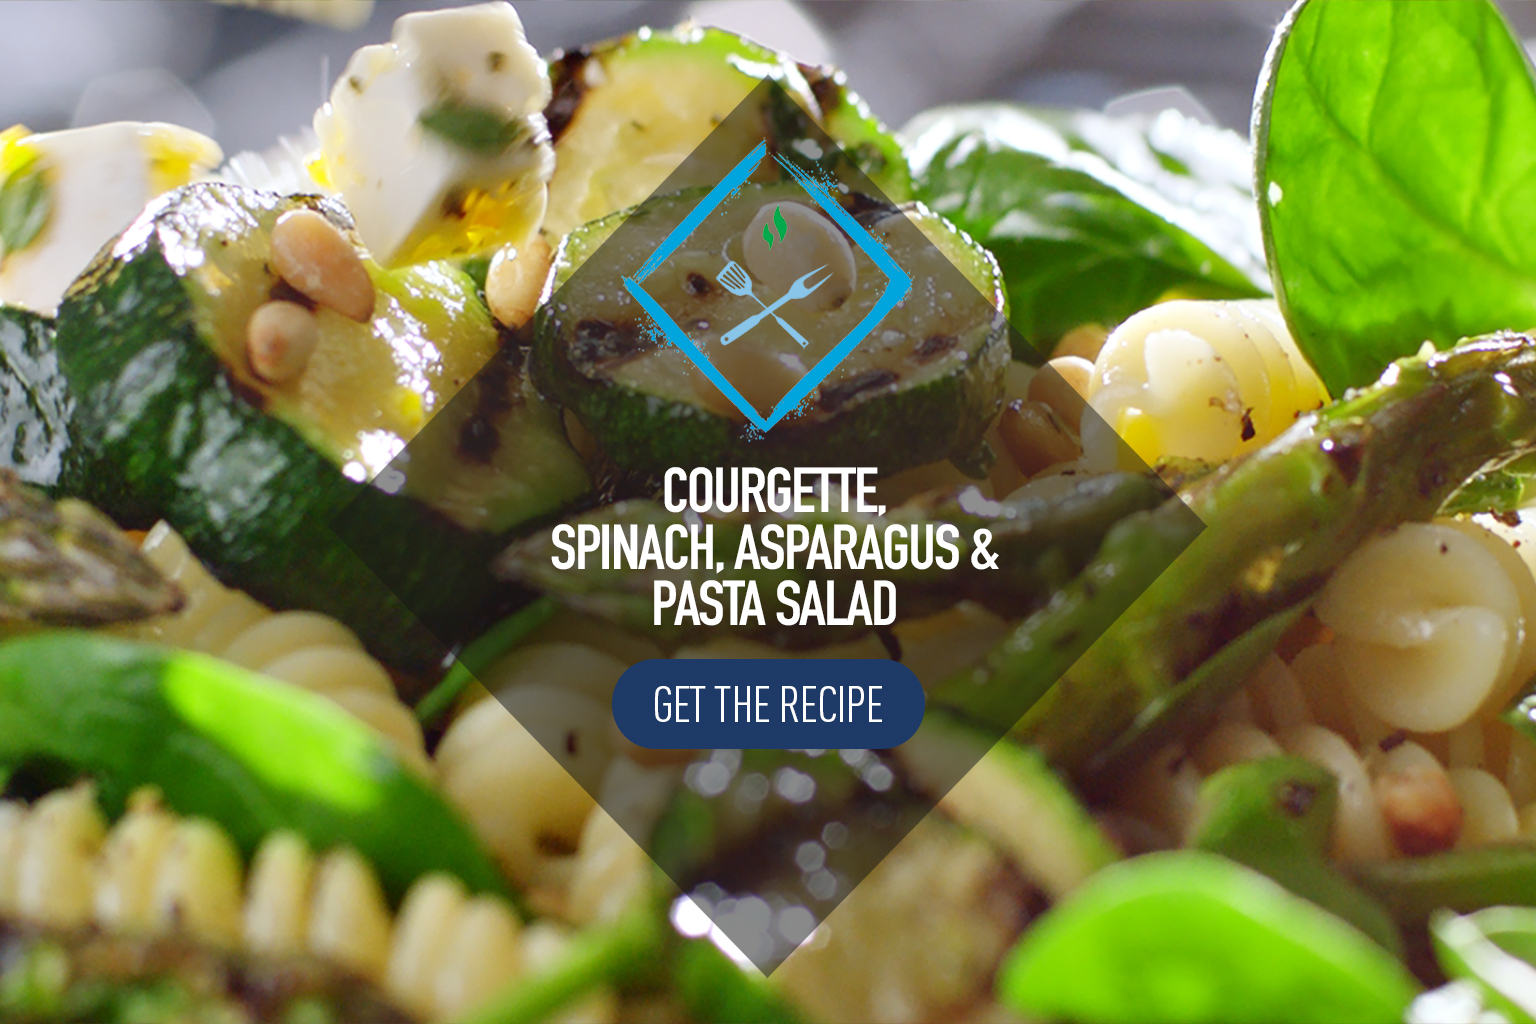 Pasta Salad with Courgette, Spinach and Asparagus